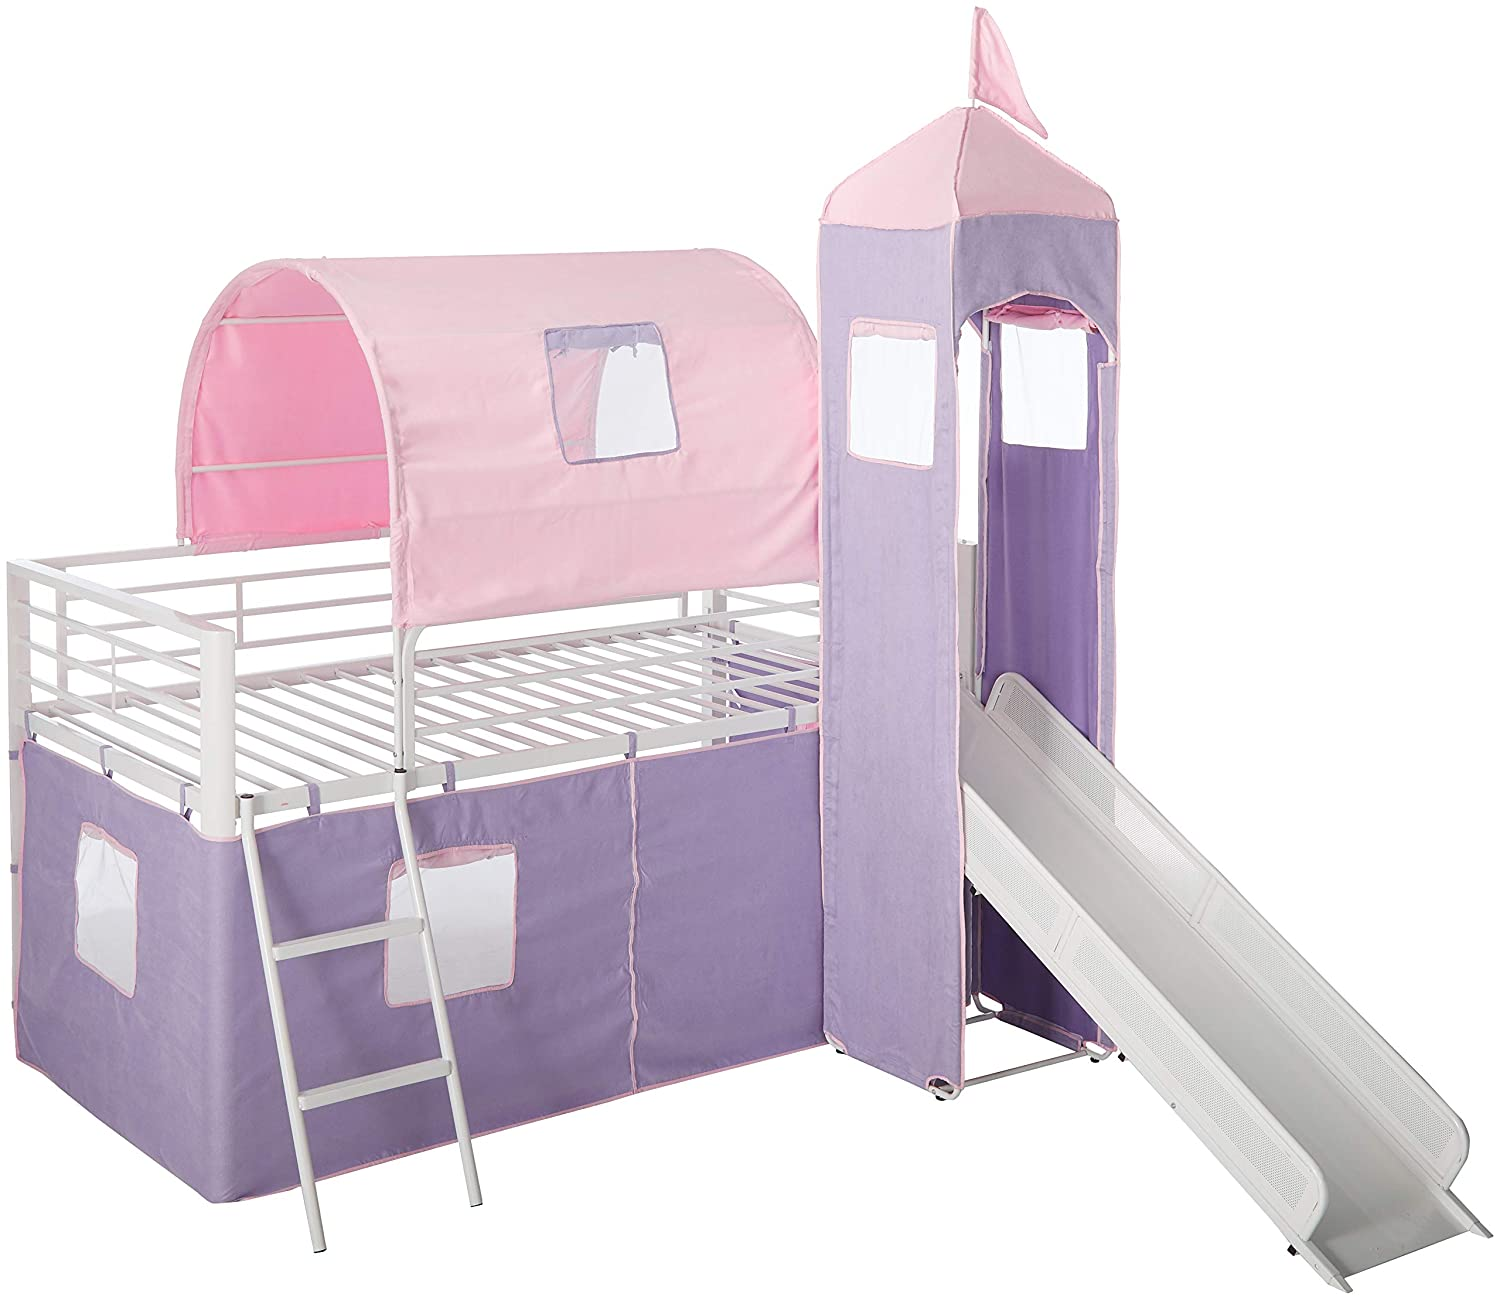 Top 7 Best Bunk Beds for Toddlers Reviews in 2020 7